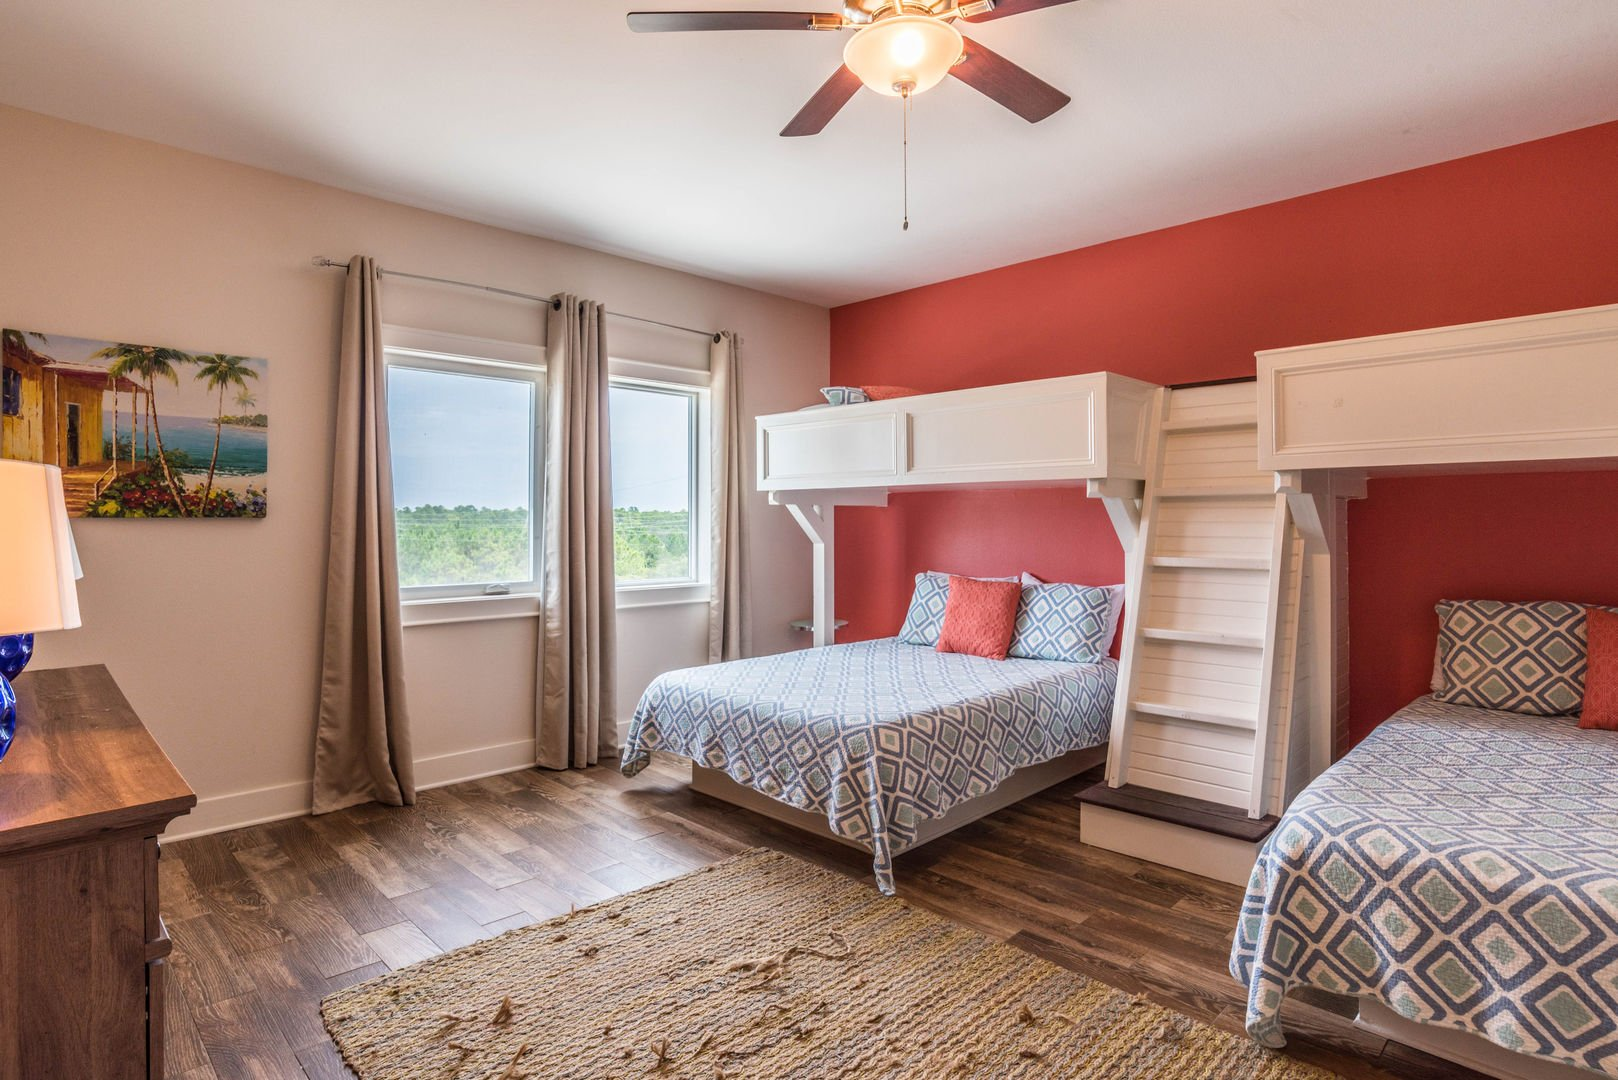 Guest Room with Unique Beds